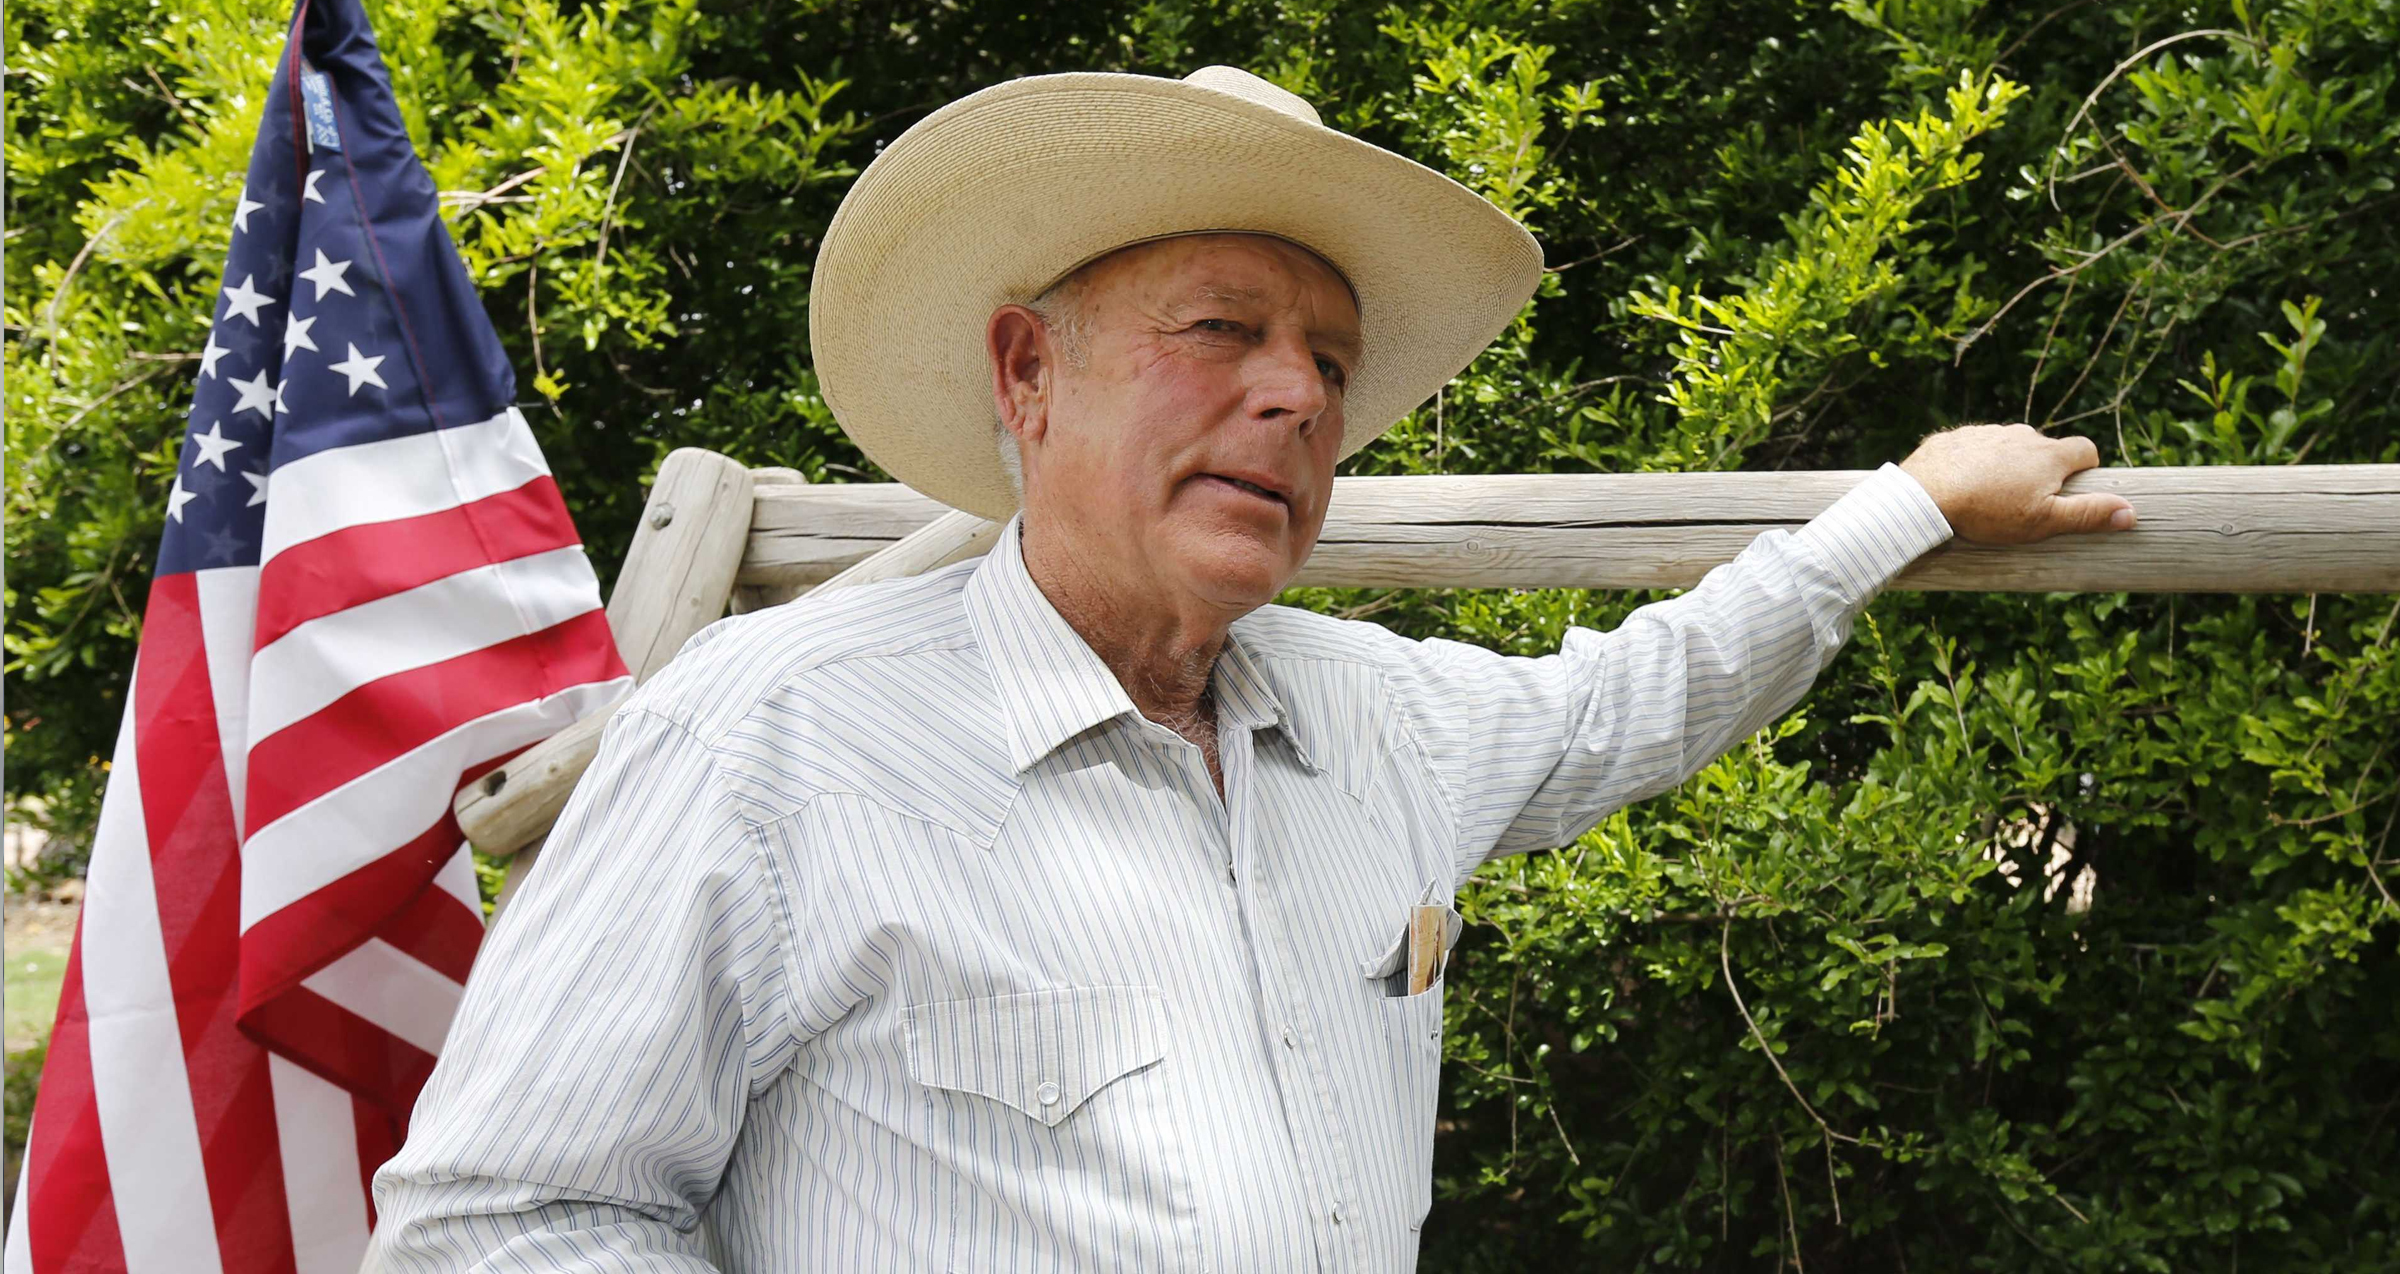 Cliven Bundy's Psychotic Break With Reality